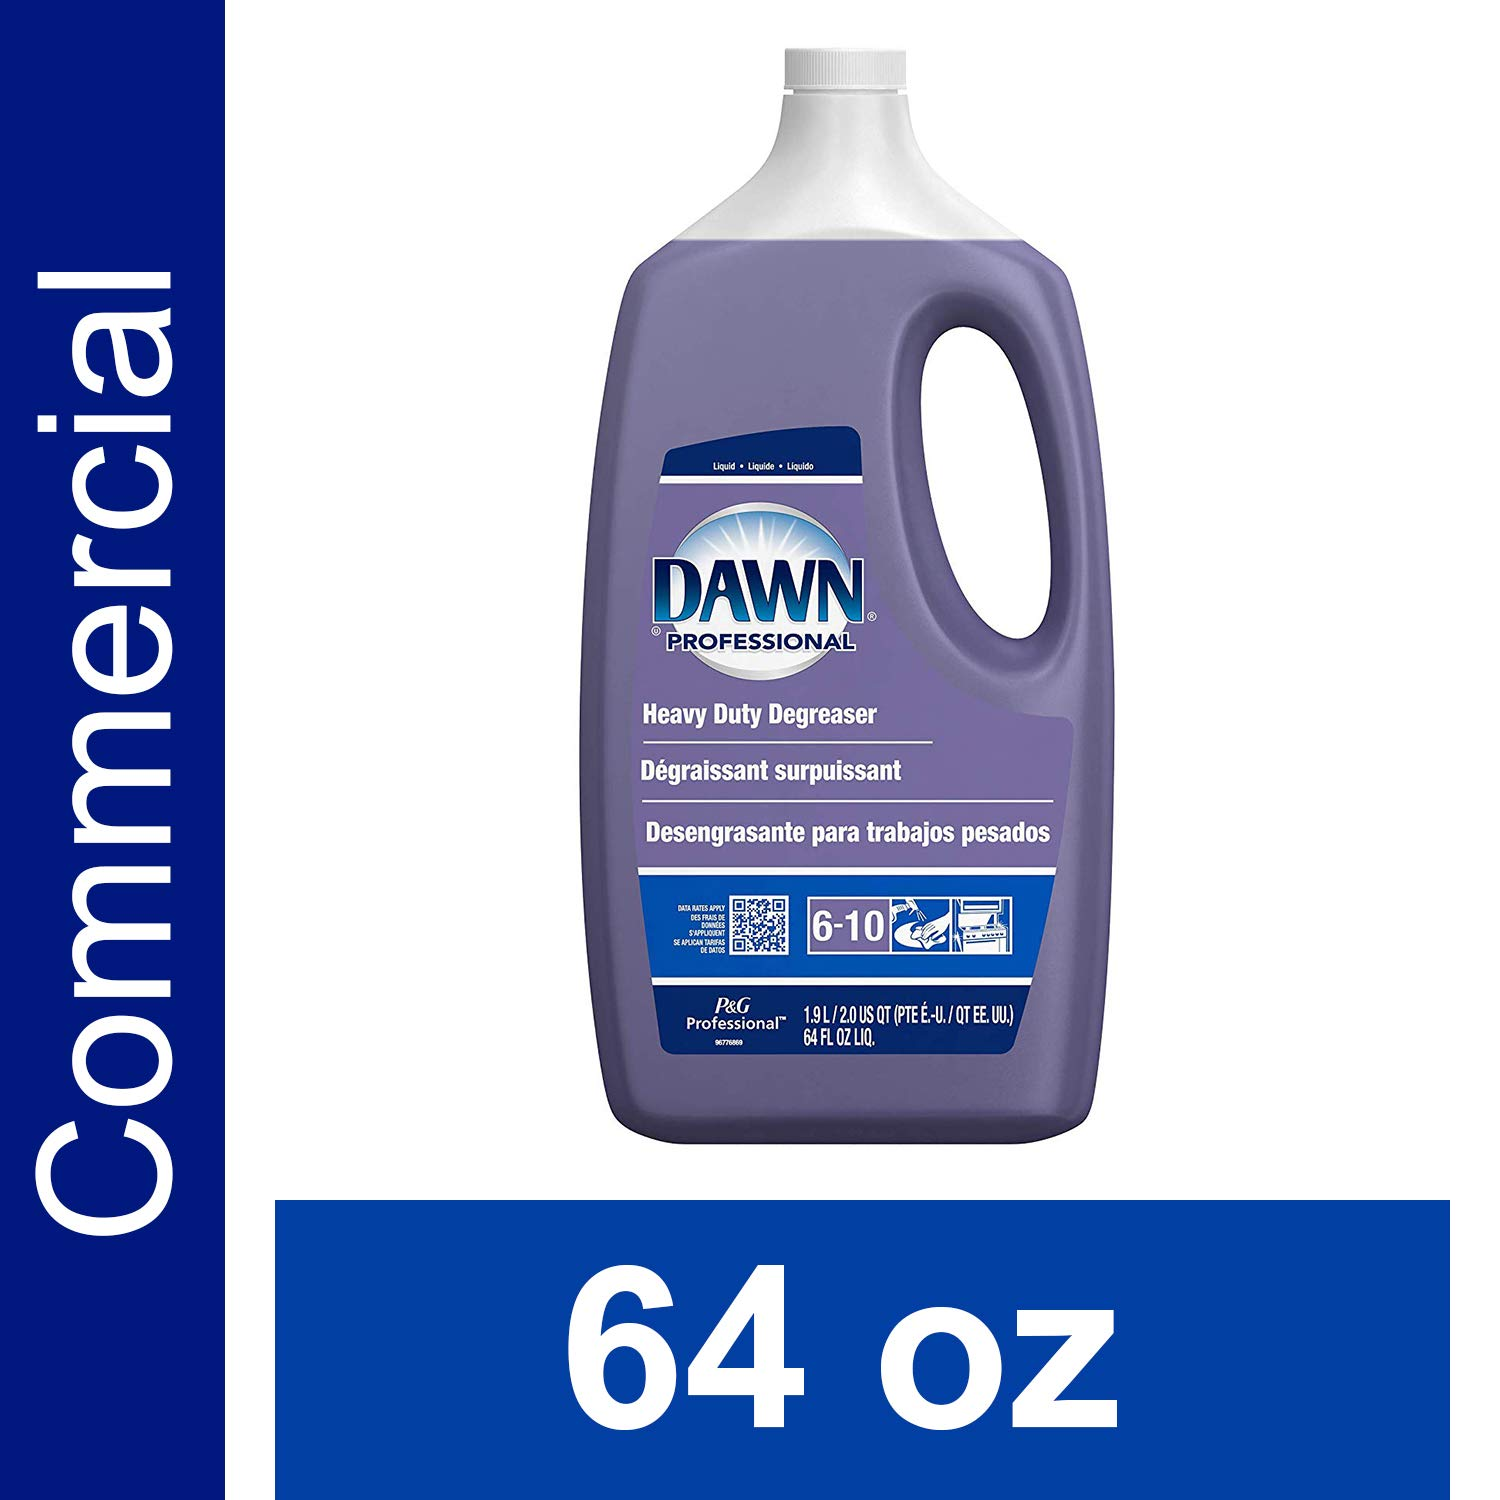 Amazon.com: Heavy Duty Degreaser by Dawn Professional, Bulk Liquid Degreaser Refill for Commercial Restaurant Kitchens and Bathrooms, 64 oz.